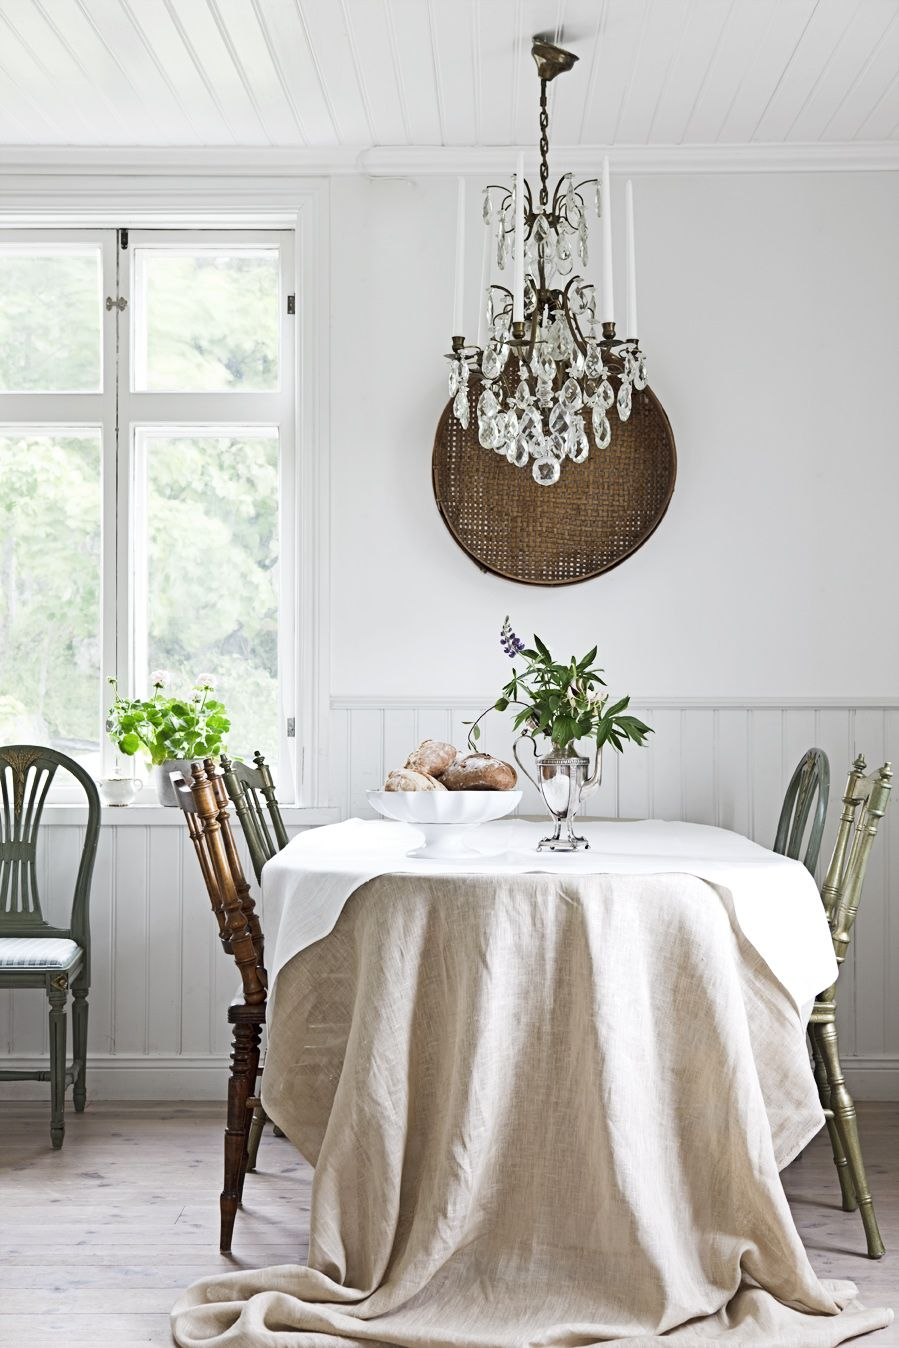 Chateau Chic Vintage Decor Interiors Draped Linen Tablecloth Mounted Baket On